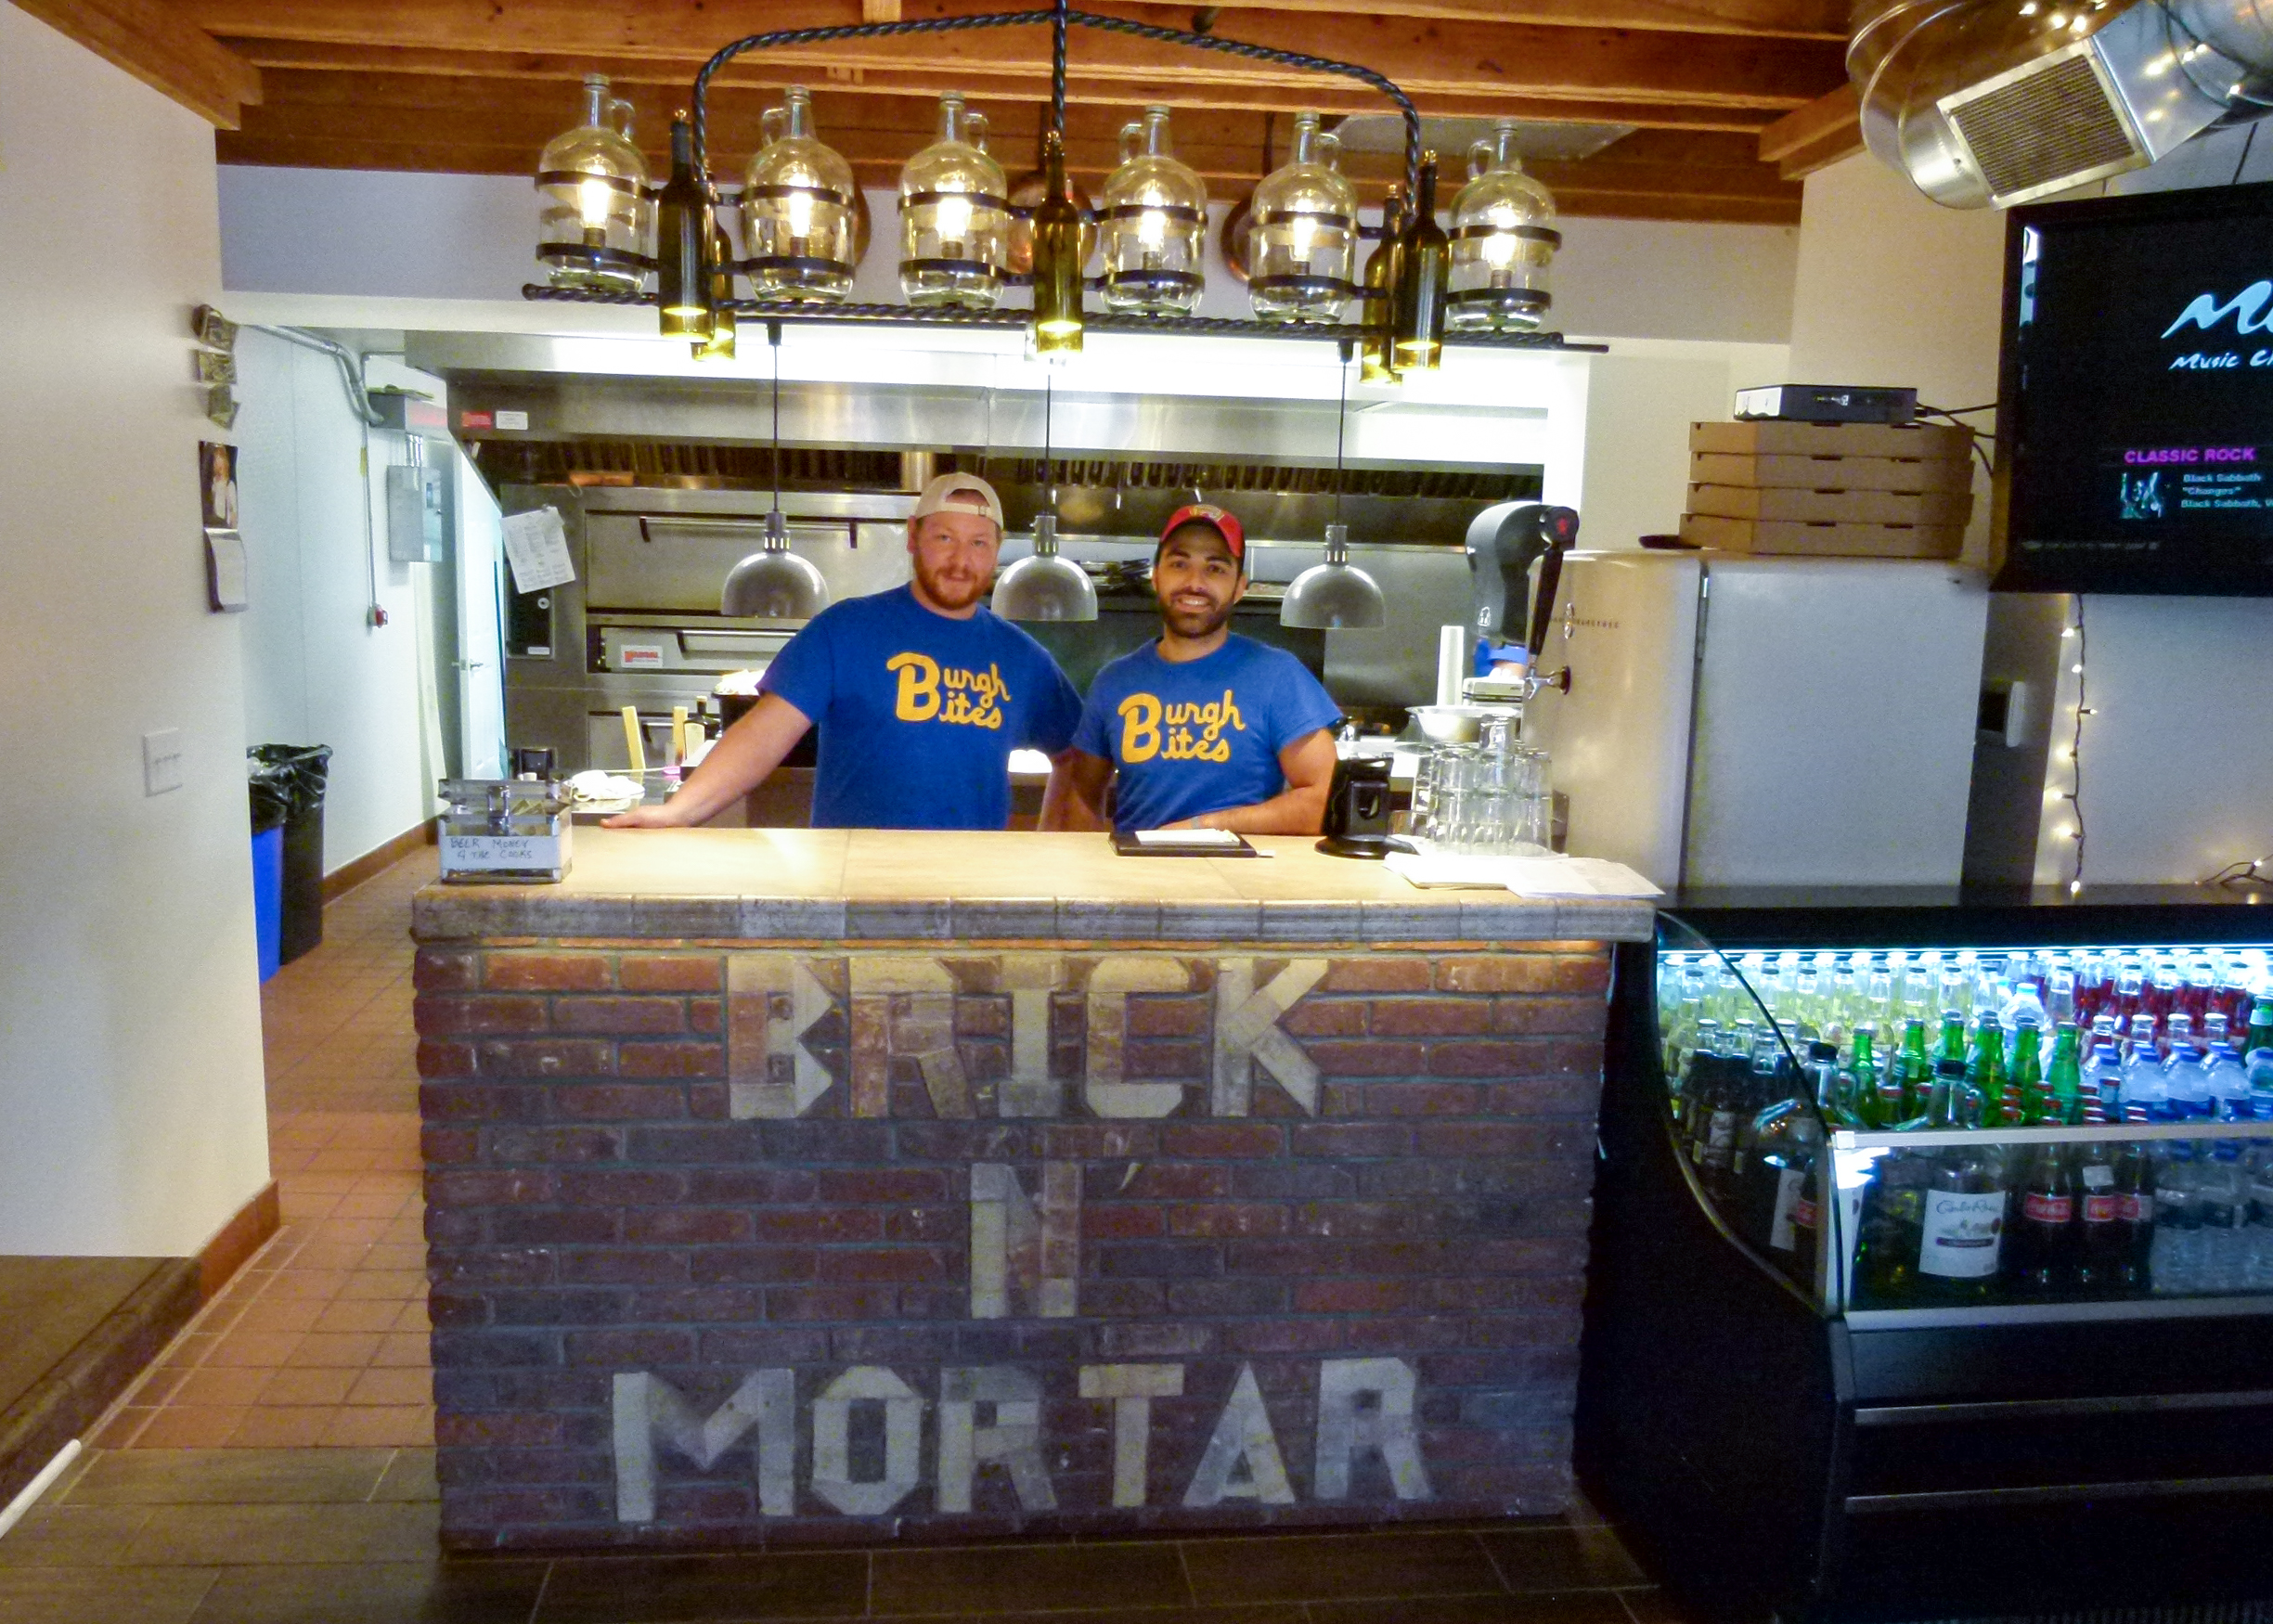 Head Chef Jon Tryc (L.) and owner Ricci Minella (R.) enjoy creating delicious food and interacting with customers.